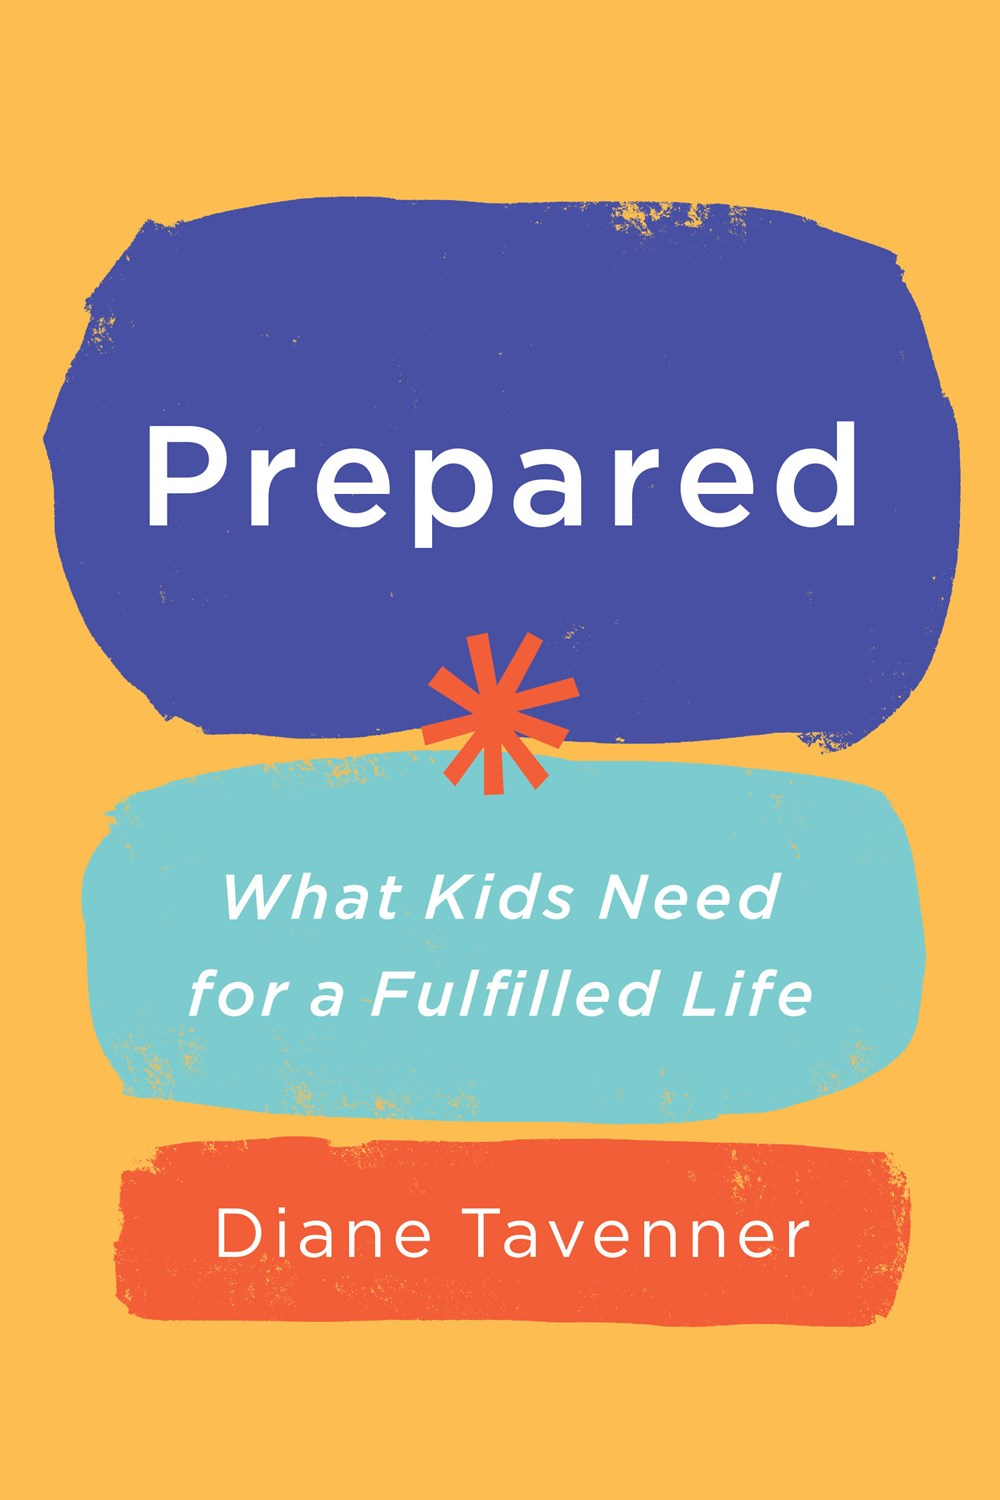 Prepared What Kids Need for a Fulfilled Life